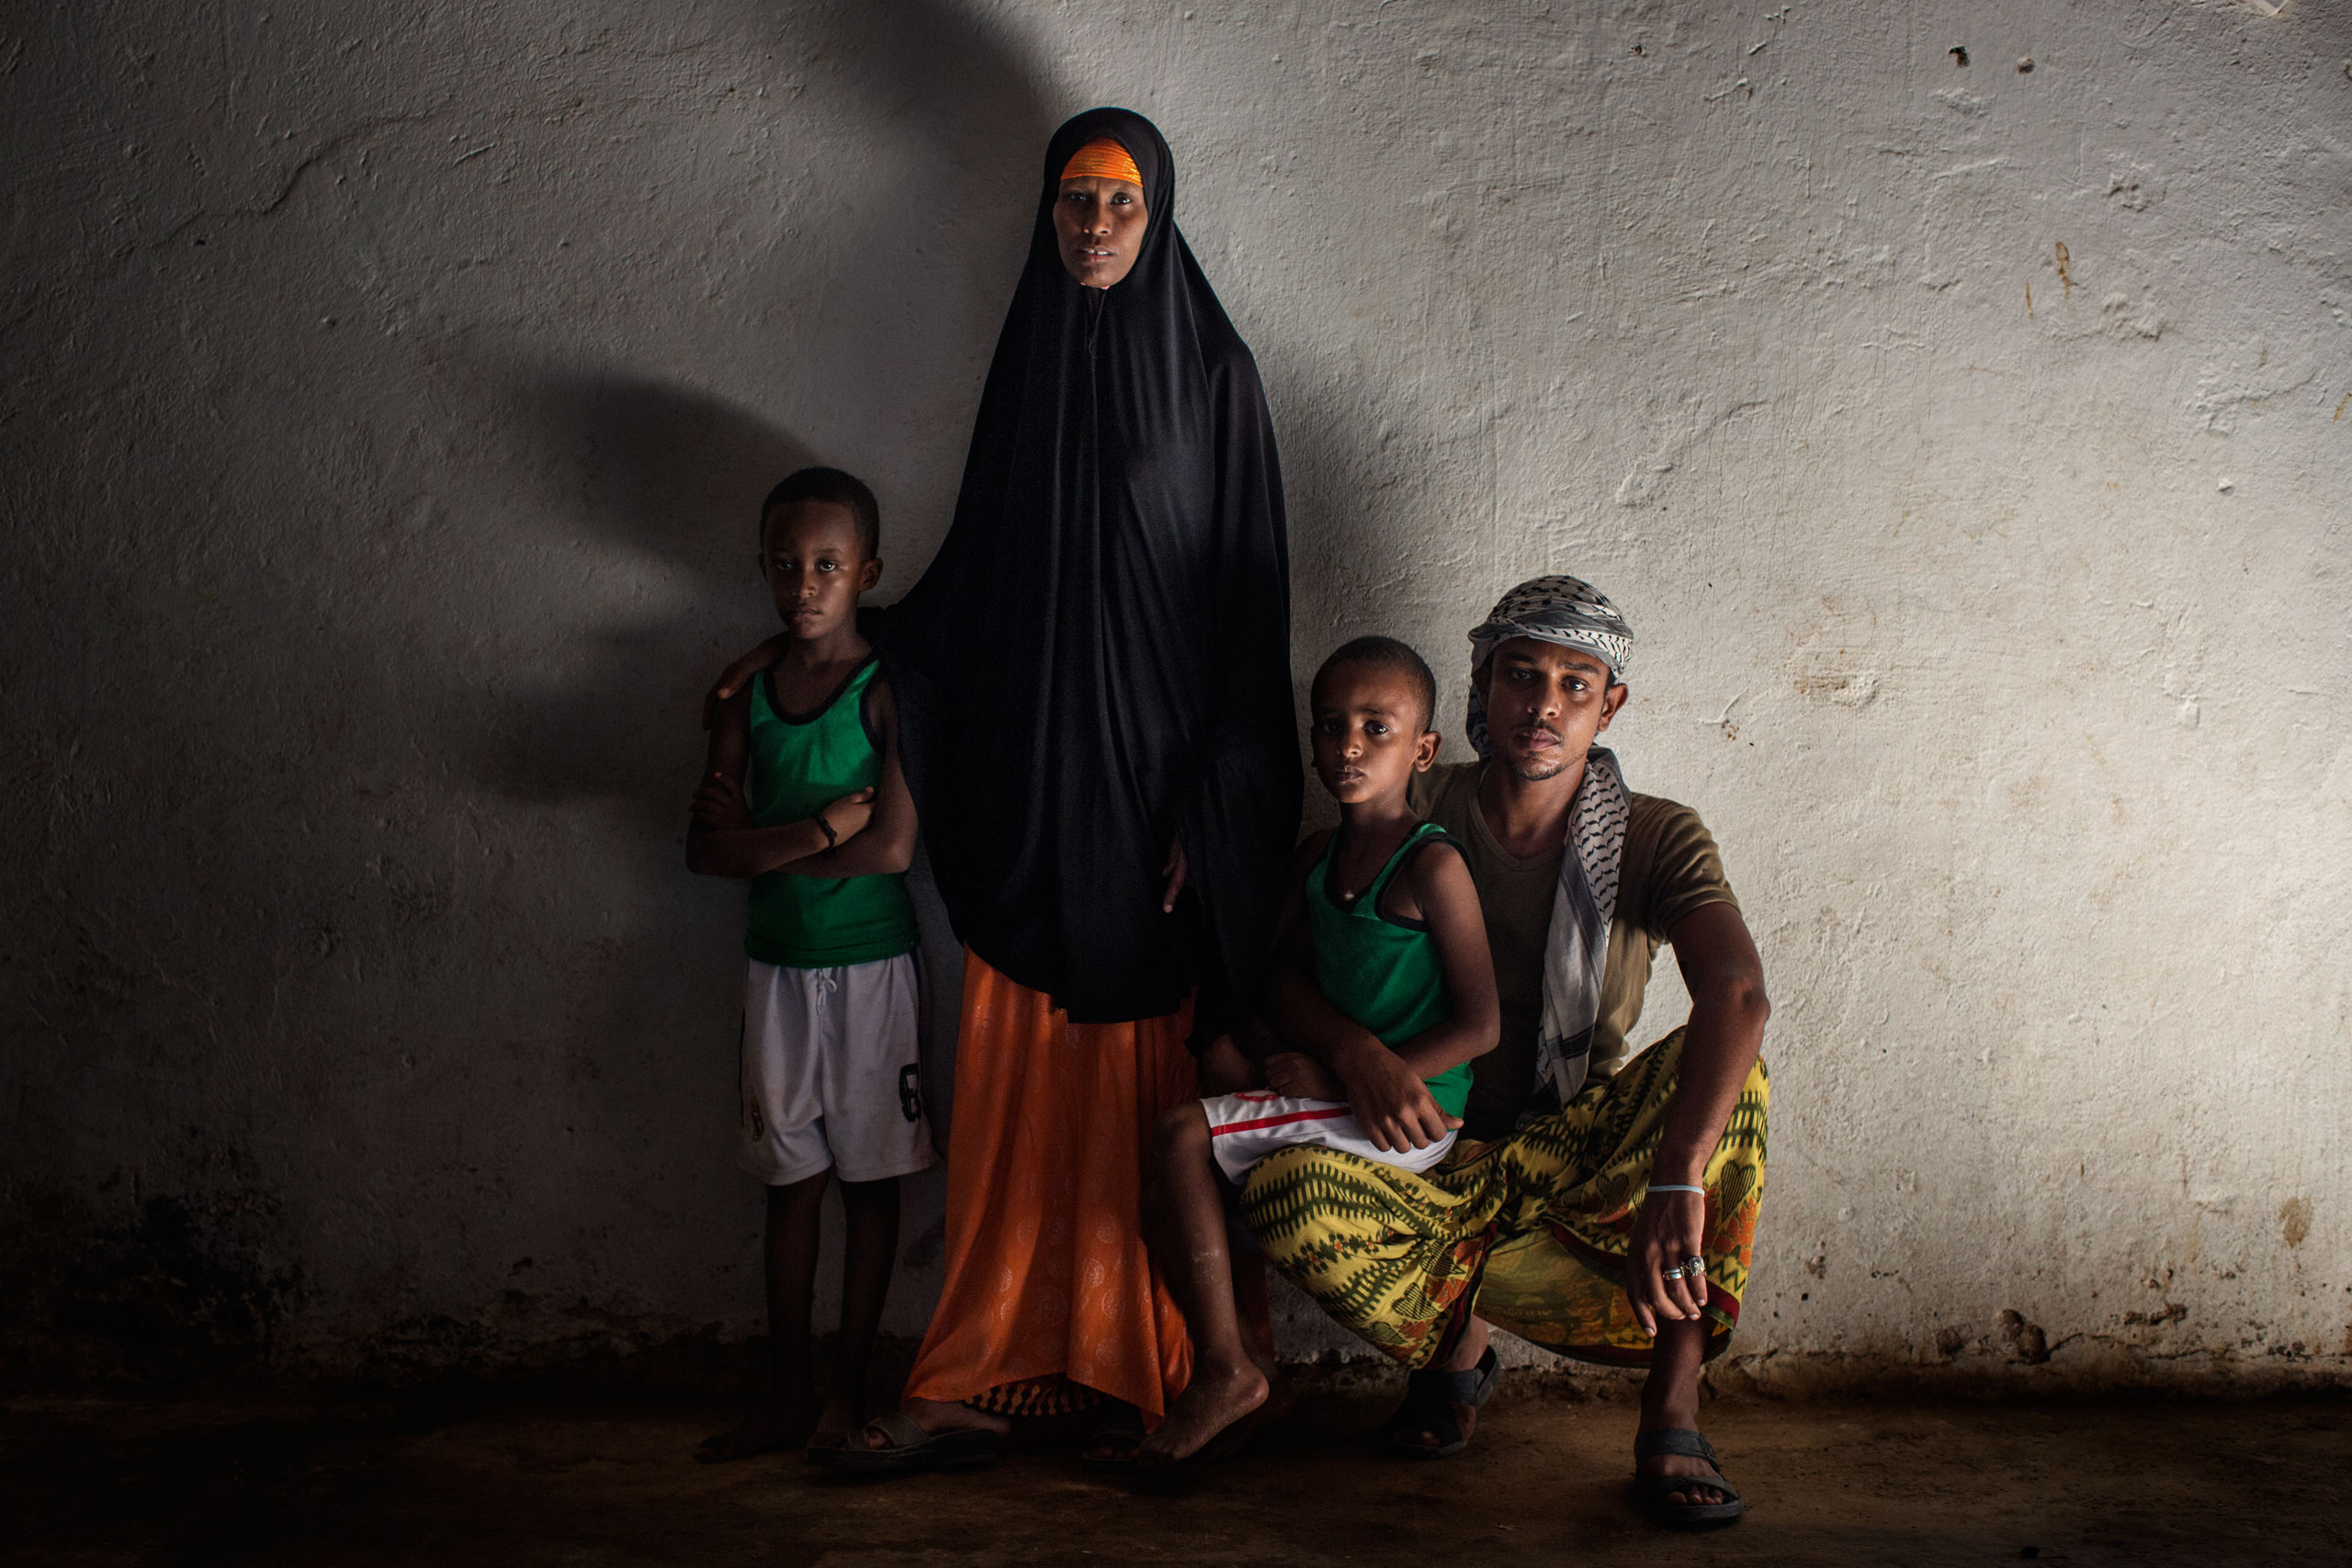 A. Abdalla Ali, a Yemeni refugee from Aden, Yemen, with his wife and their two sons. Abdalla was a house decorator back in his country. He left Yemen with his family when his neighborhood was bombed. Bosaso, Somalia. October 6, 2015.